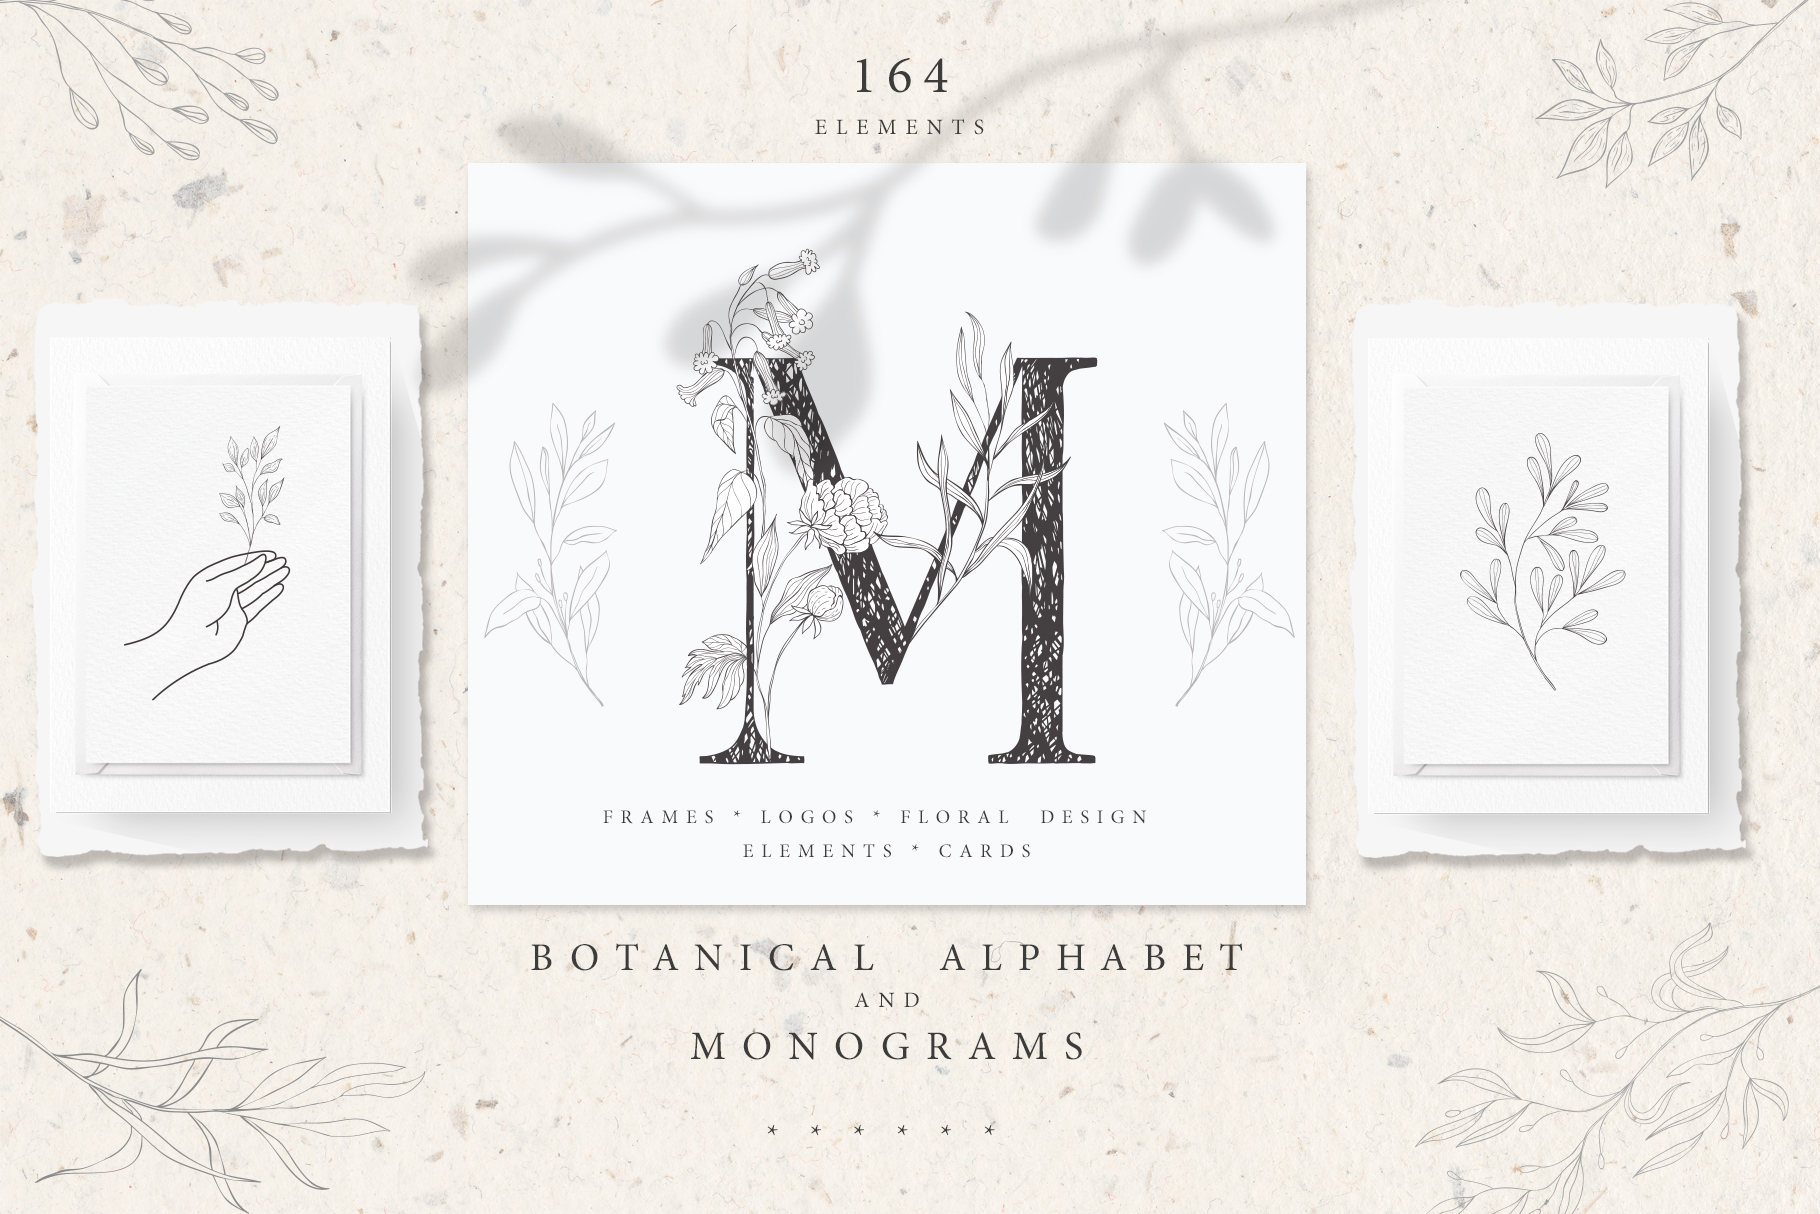 Botanical Alphabet & Monograms